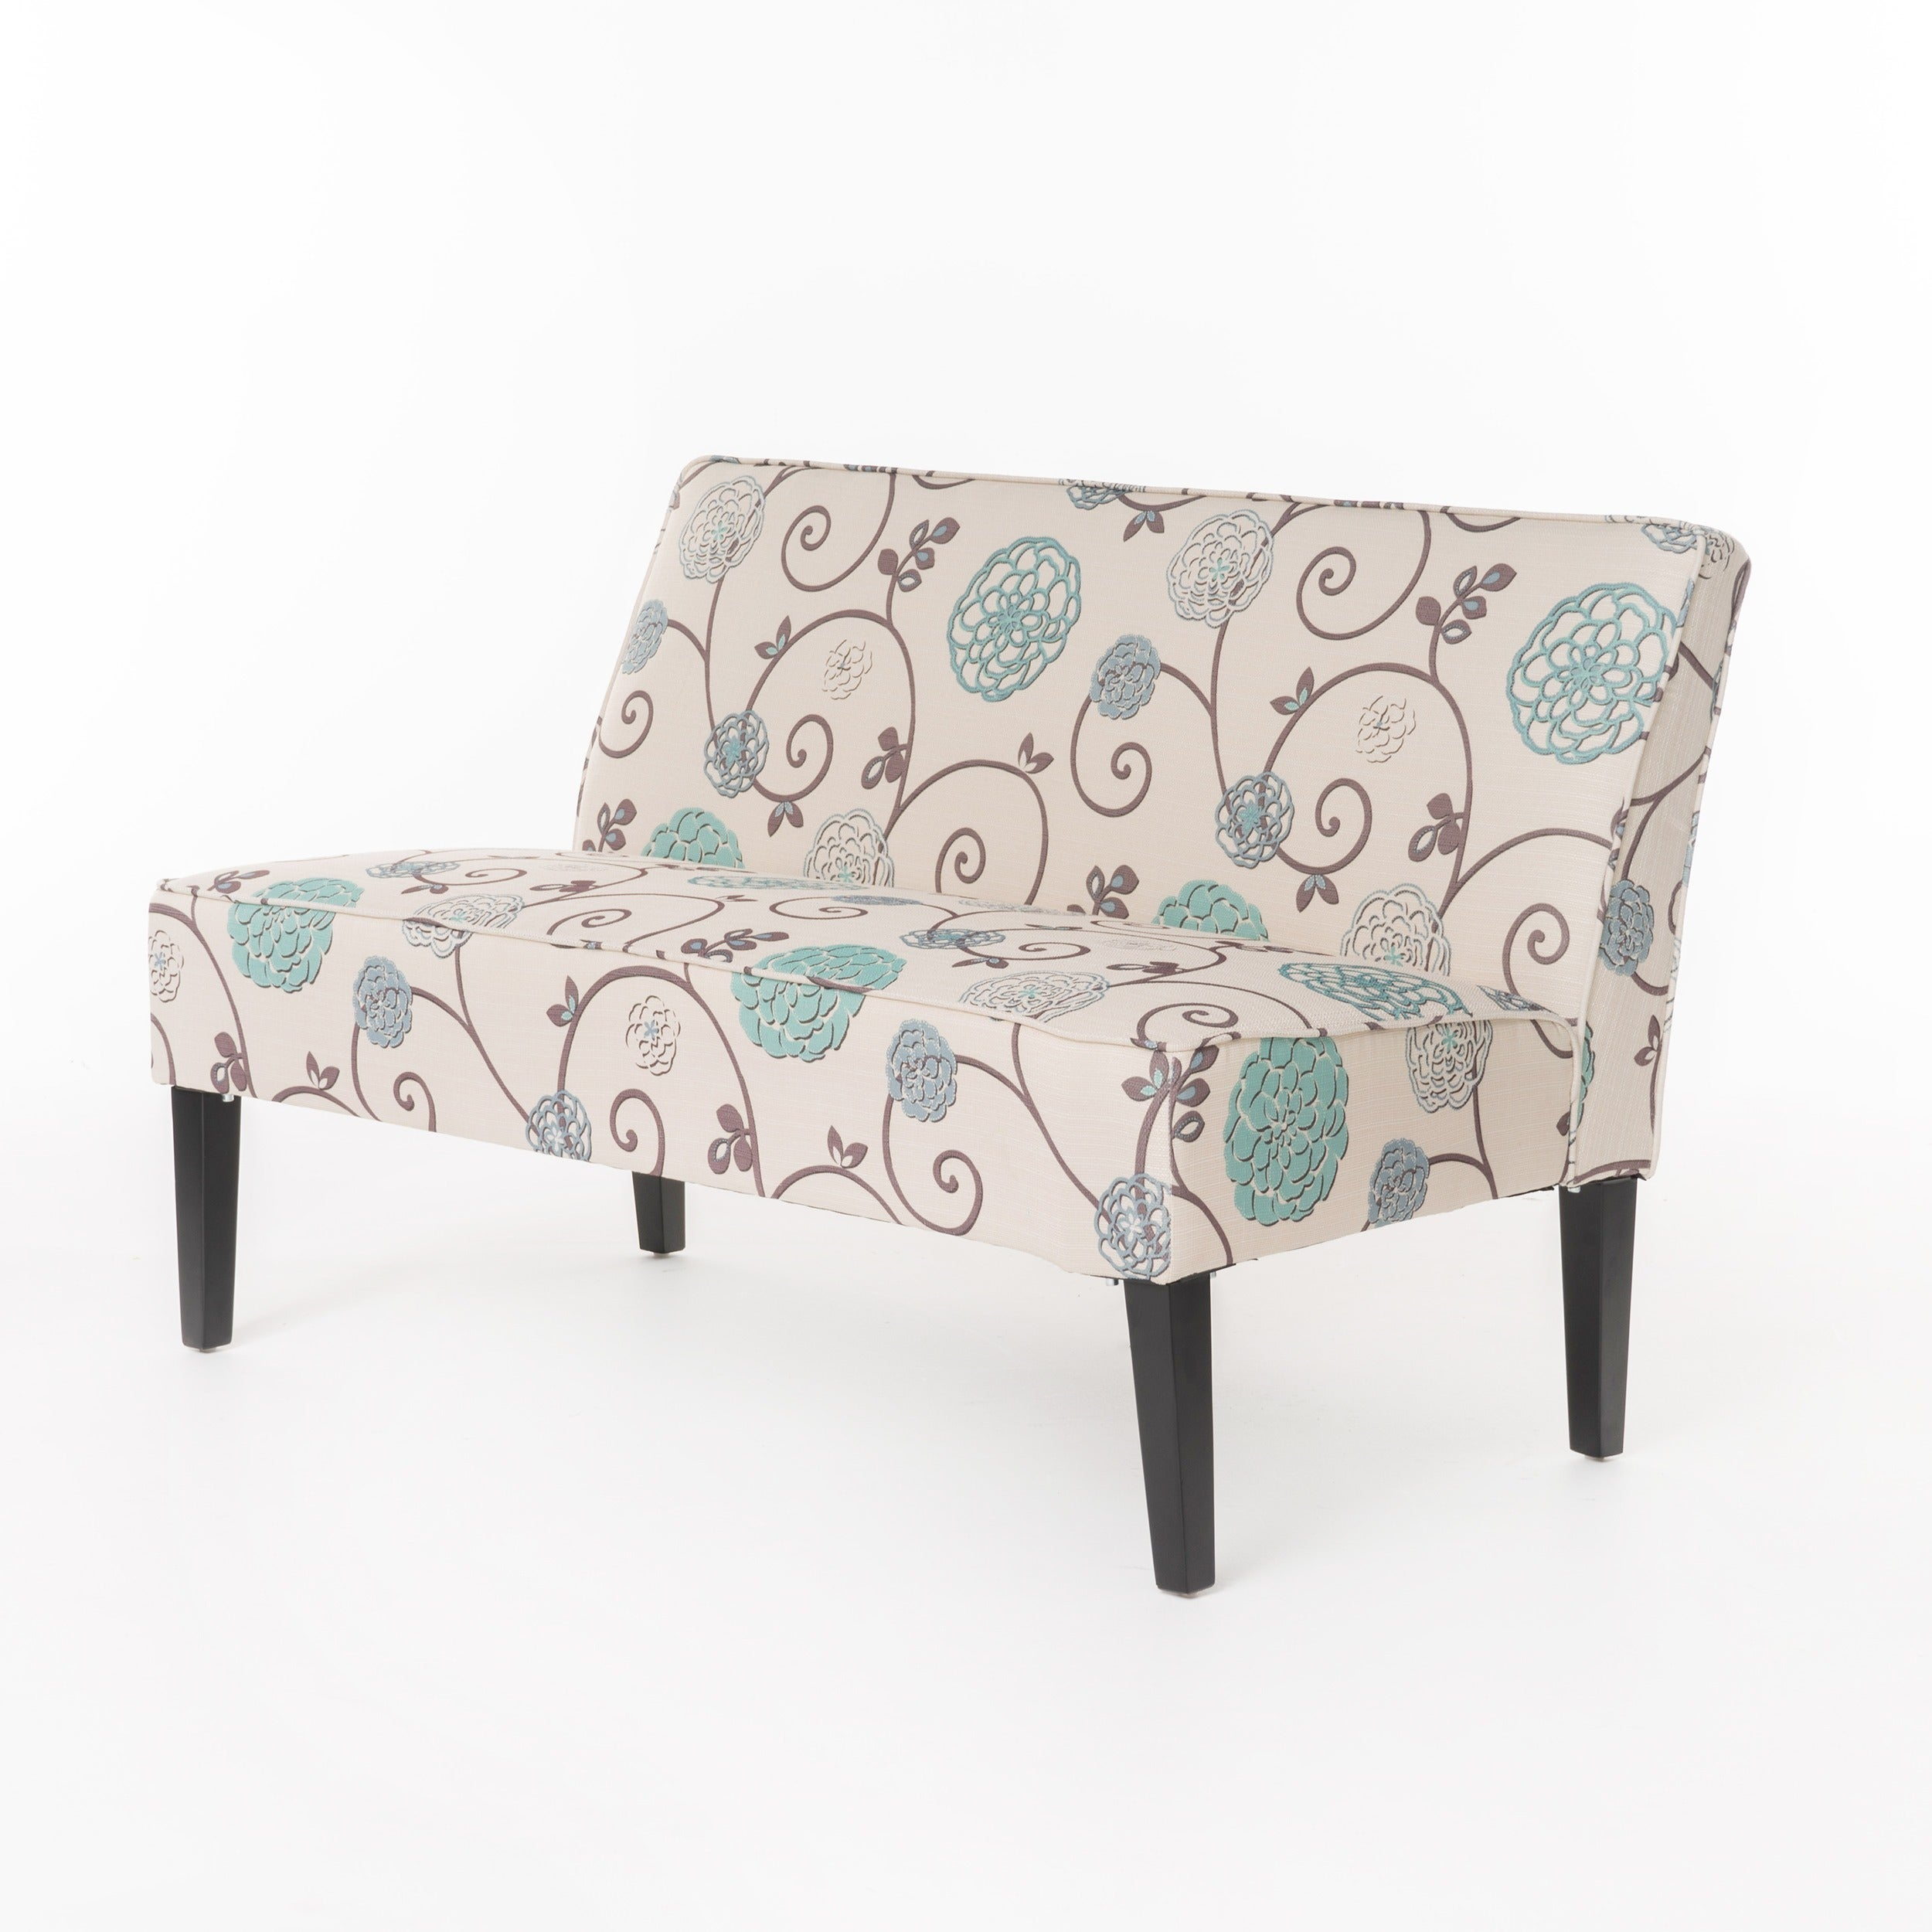 furniture name by id chain product jasmine category ls page global tobacco jt index loveseat fabric